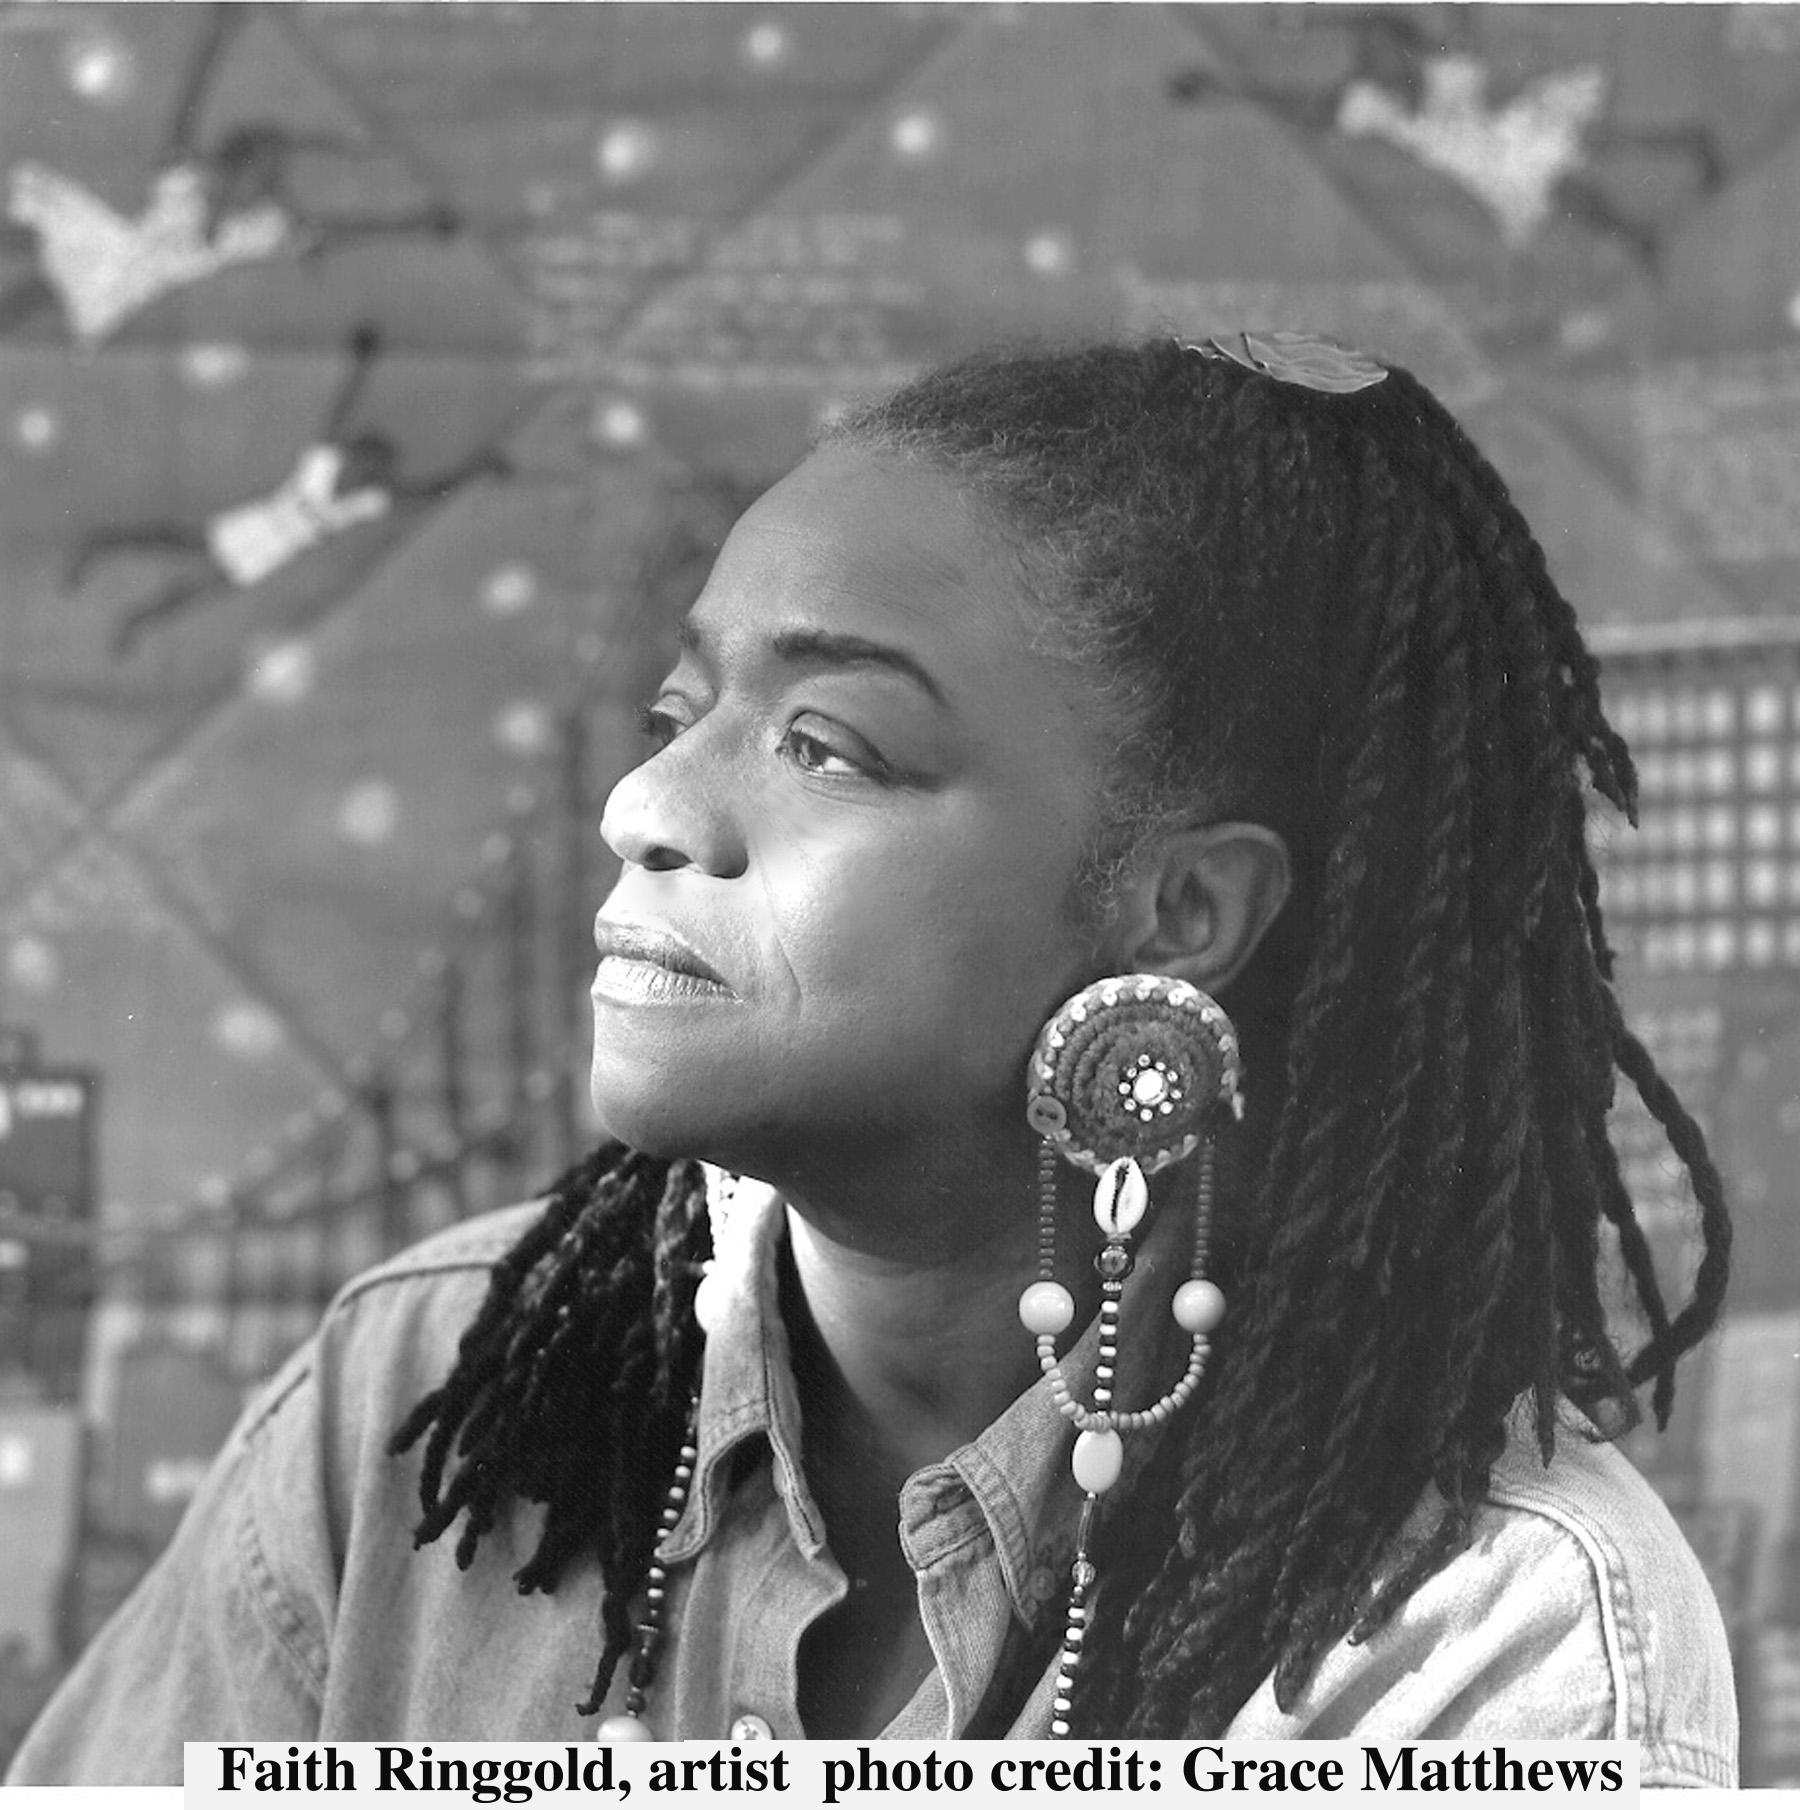 Faith Ringgold Source:http://www.faithringgold.com/ringgold/bio.htm Image used under fair use